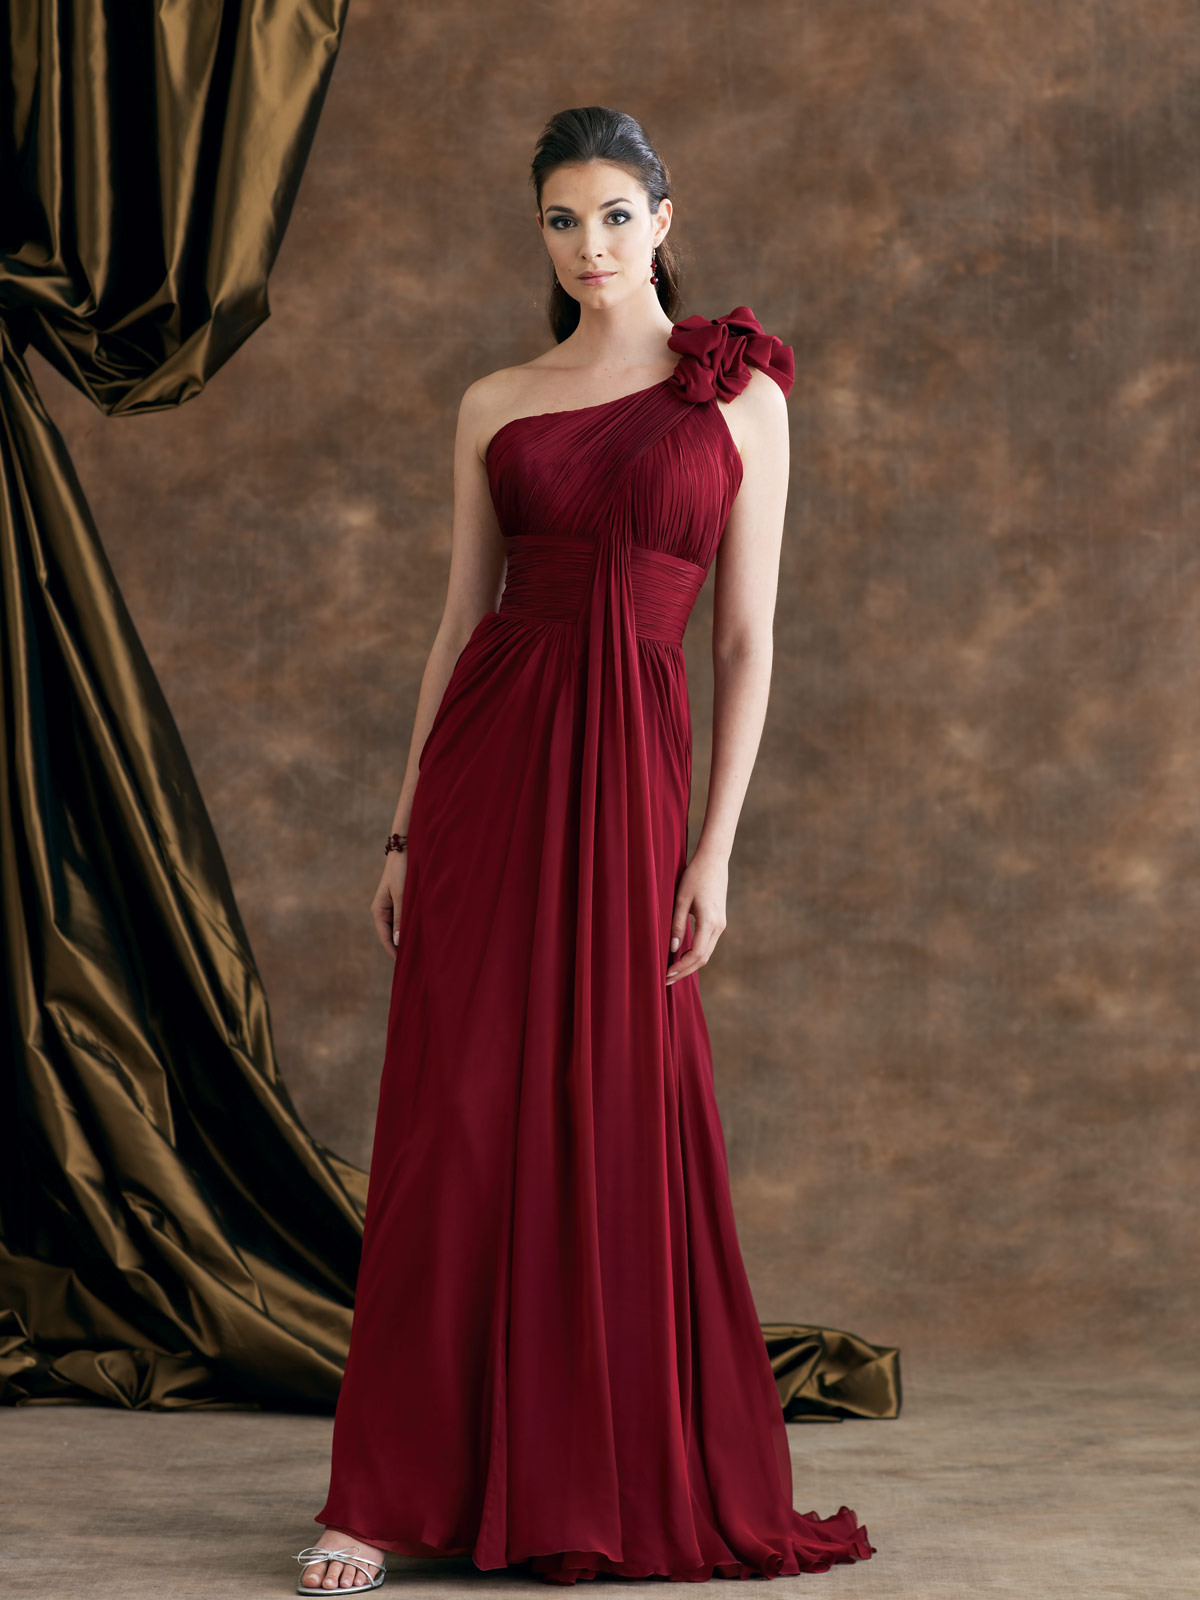 Cool Rotes Kleid Henna Abend Bester PreisFormal Coolste Rotes Kleid Henna Abend Galerie